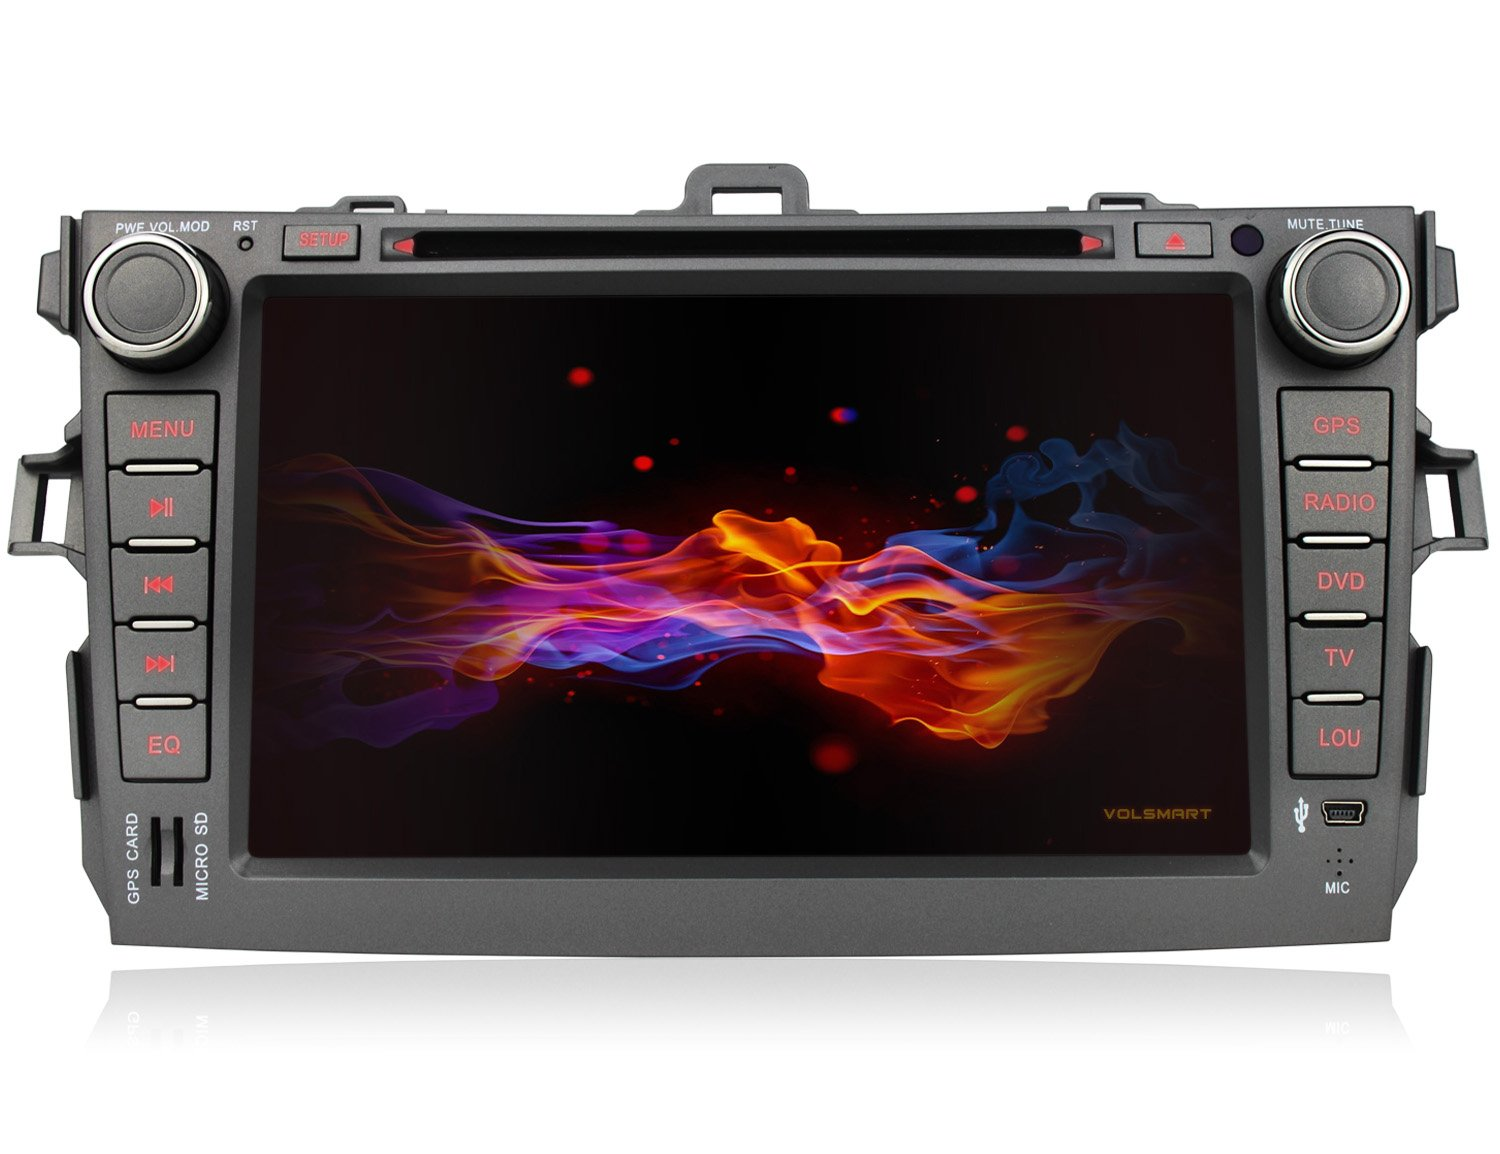 8-Cores Android Car DVD GPS for Toyota Corolla 2007-2011 with 2GB RAM 32GB ROM High Speed CPU Chipset Rockchip PX5 1024x600 Capacitive Touch Screen (8 Cores 2GB RAM 32GB ROM)